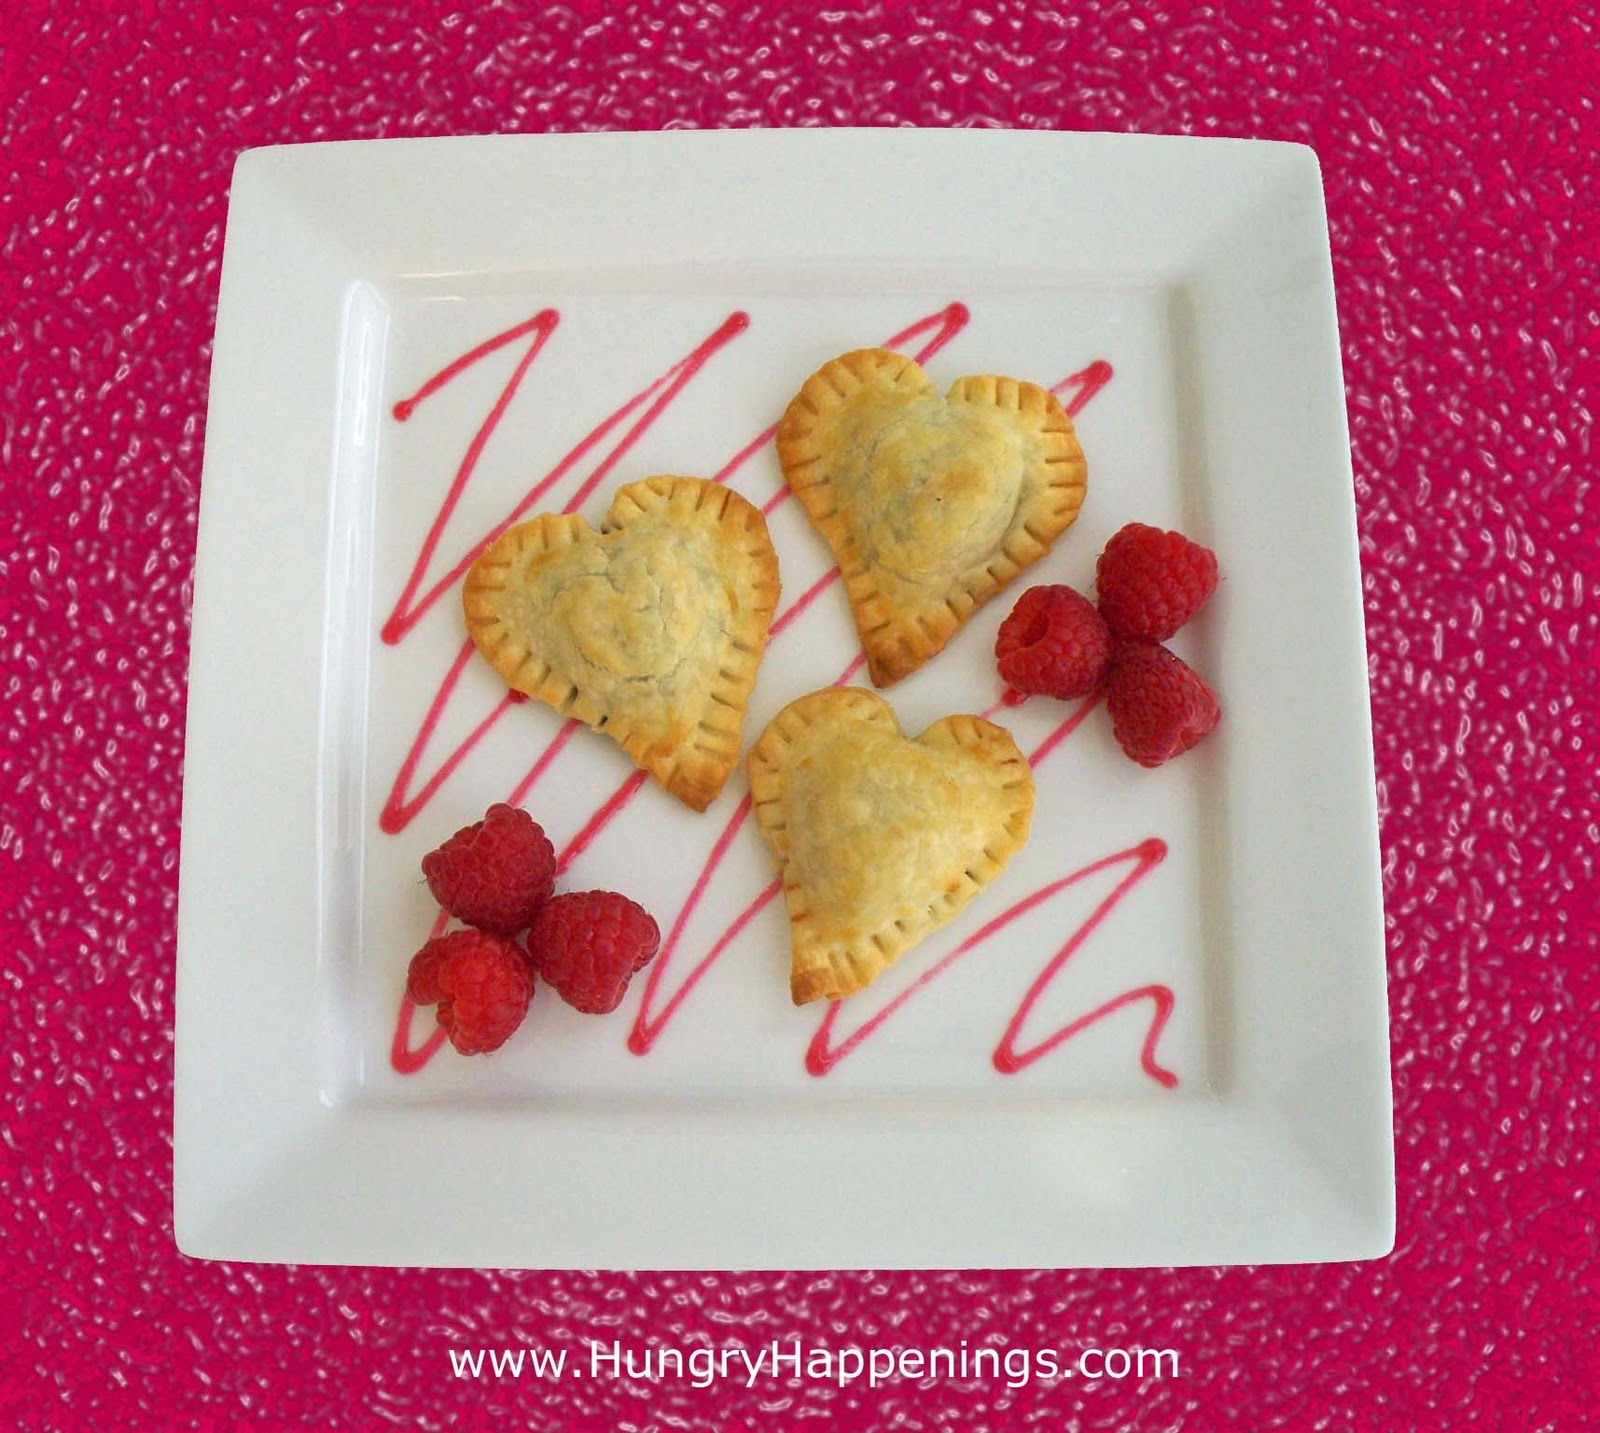 Valentine's Day Recipe - Chocolate Ravioli Hearts - Hungry Happenings